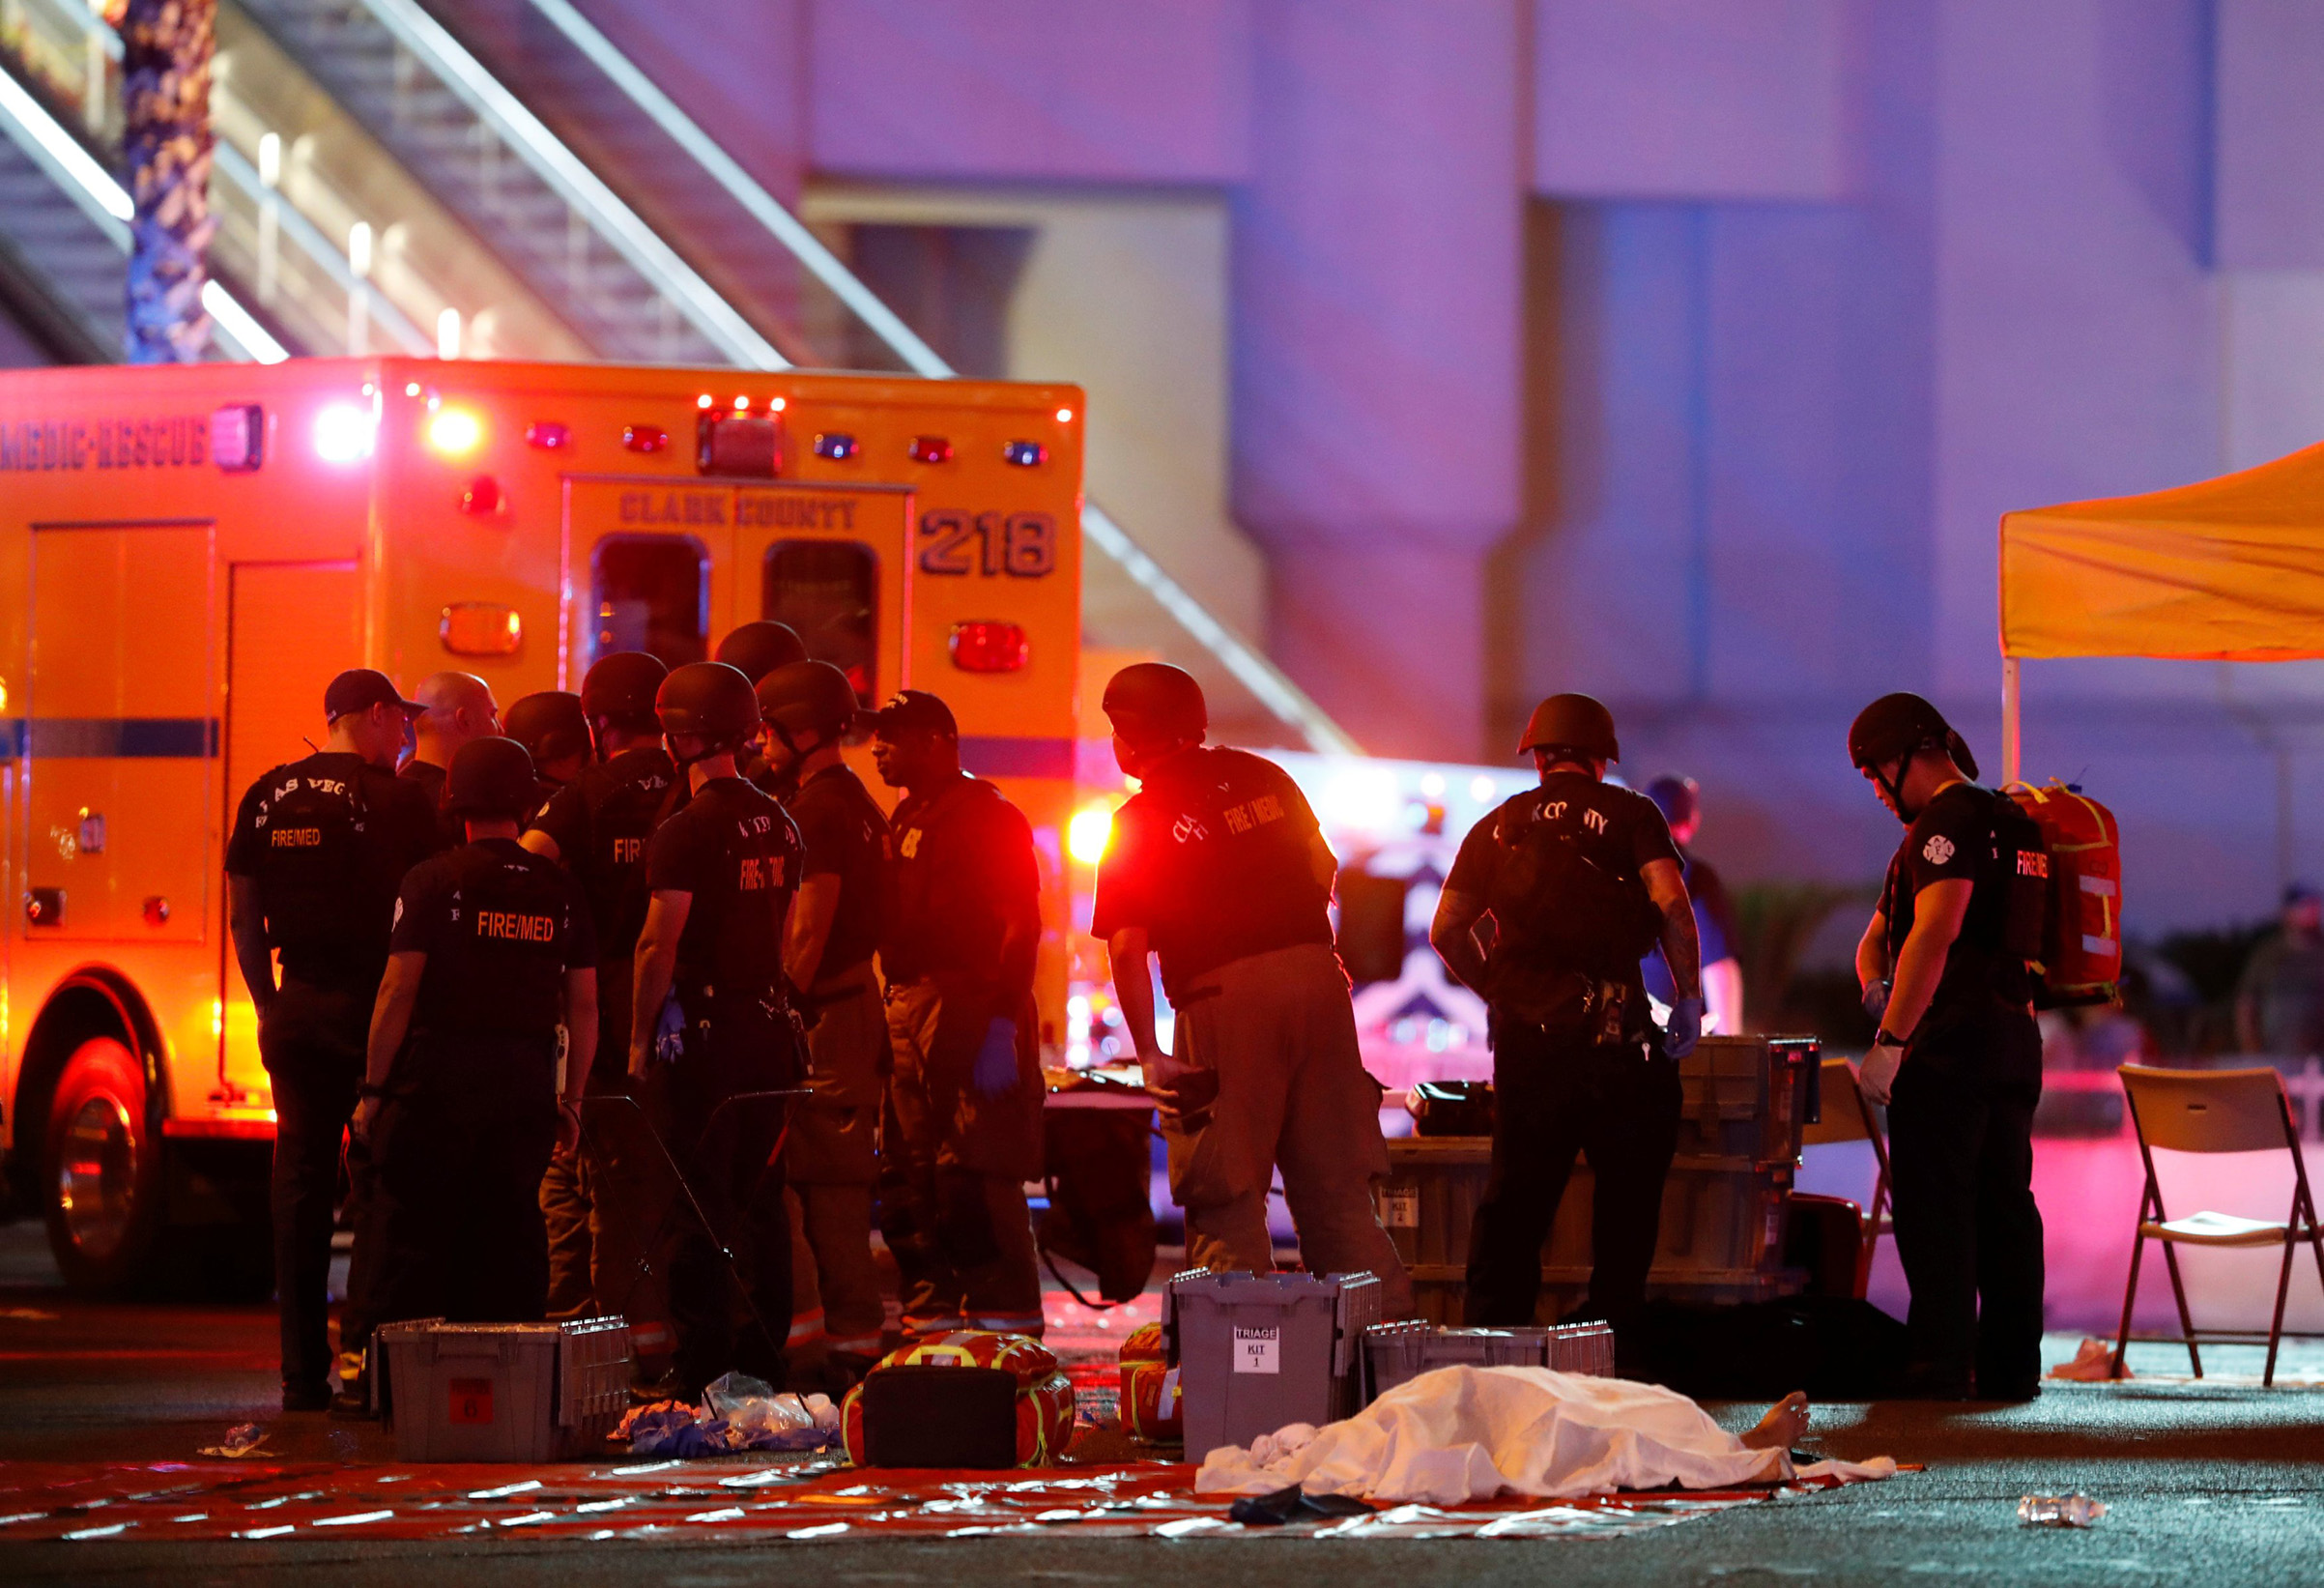 A body is covered with a sheet at the intersection of Tropicana Avenue and Las Vegas Boulevard South after a mass shooting at a music festival on Oct. 1, 2017 in Las Vegas.